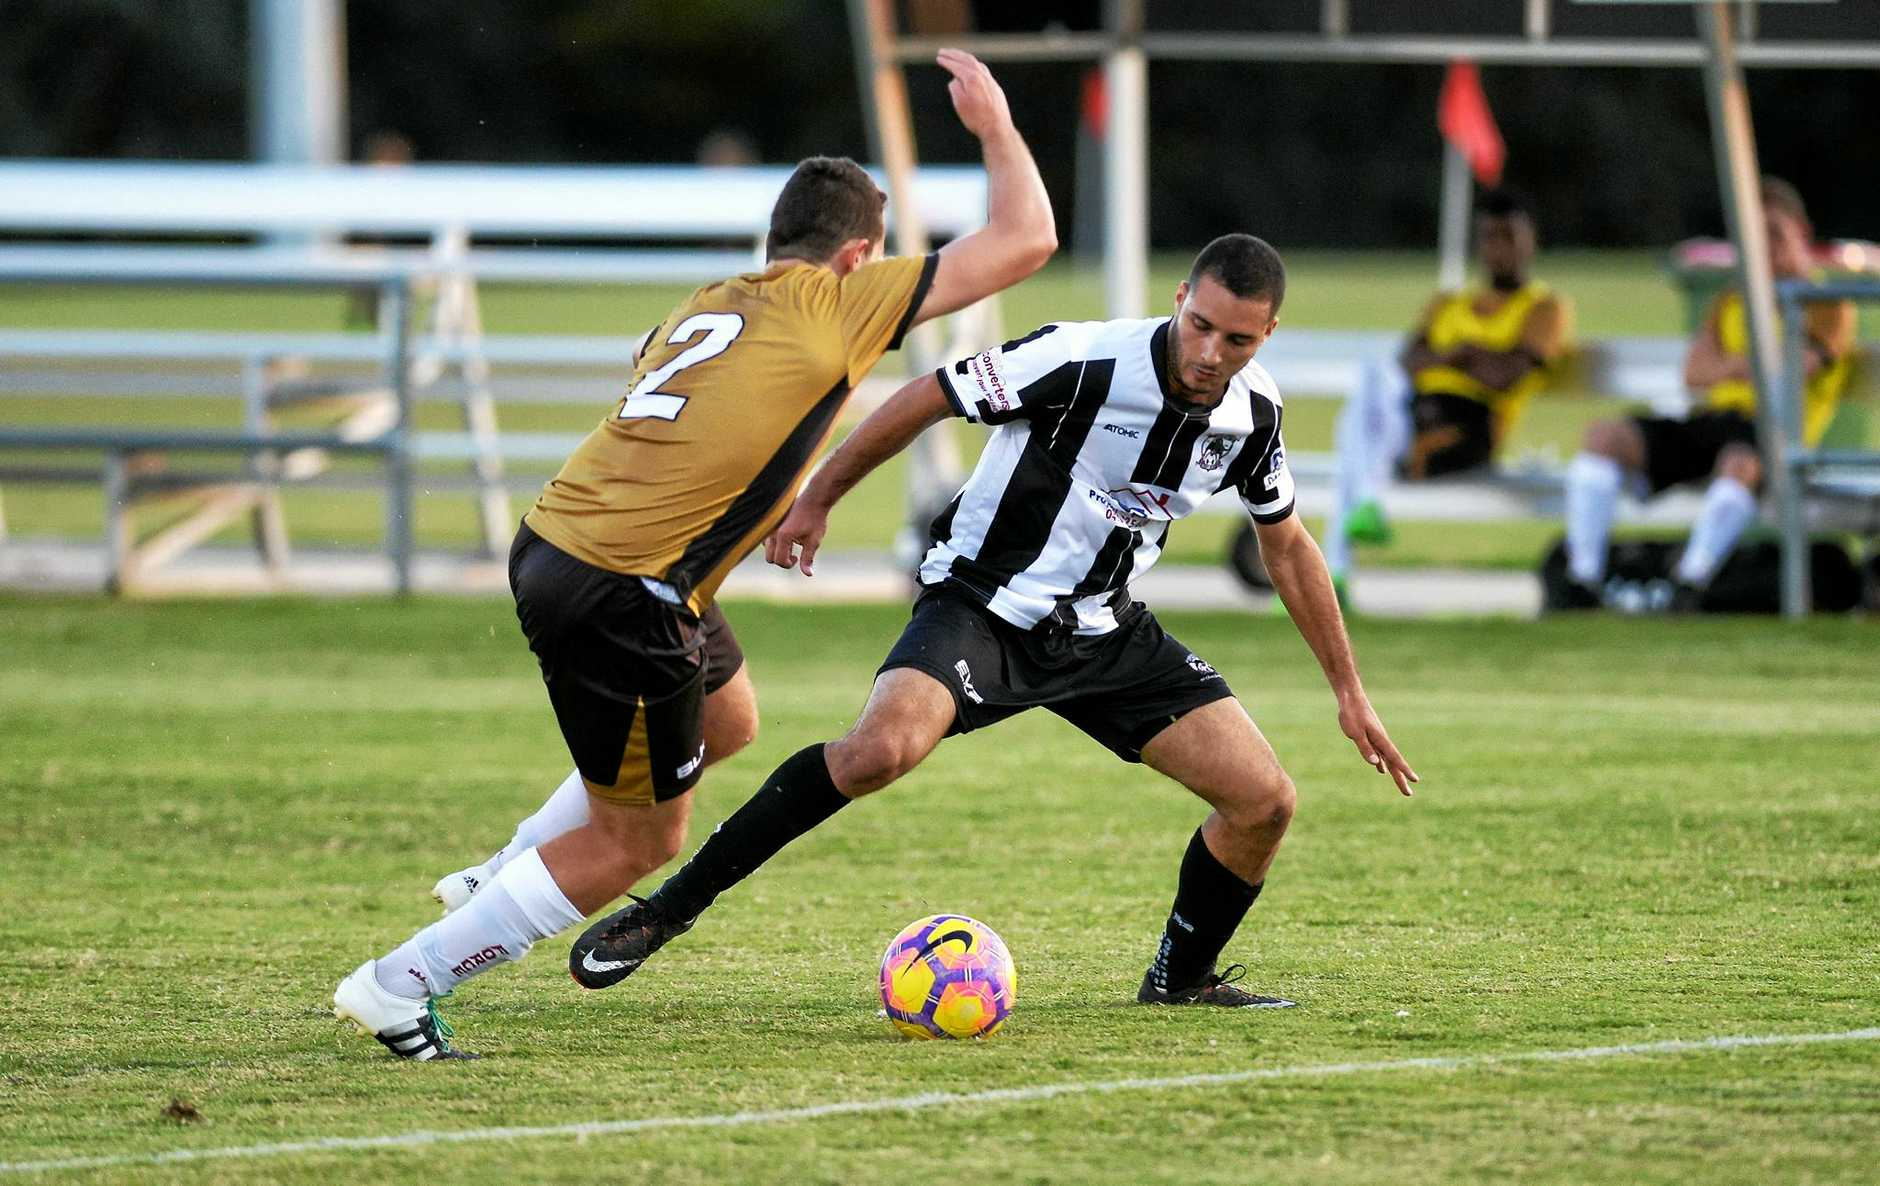 Ipswich City striker and leading goal scorer Ryan Adekoya New (right) battles with a Brisbane Phoenix player.